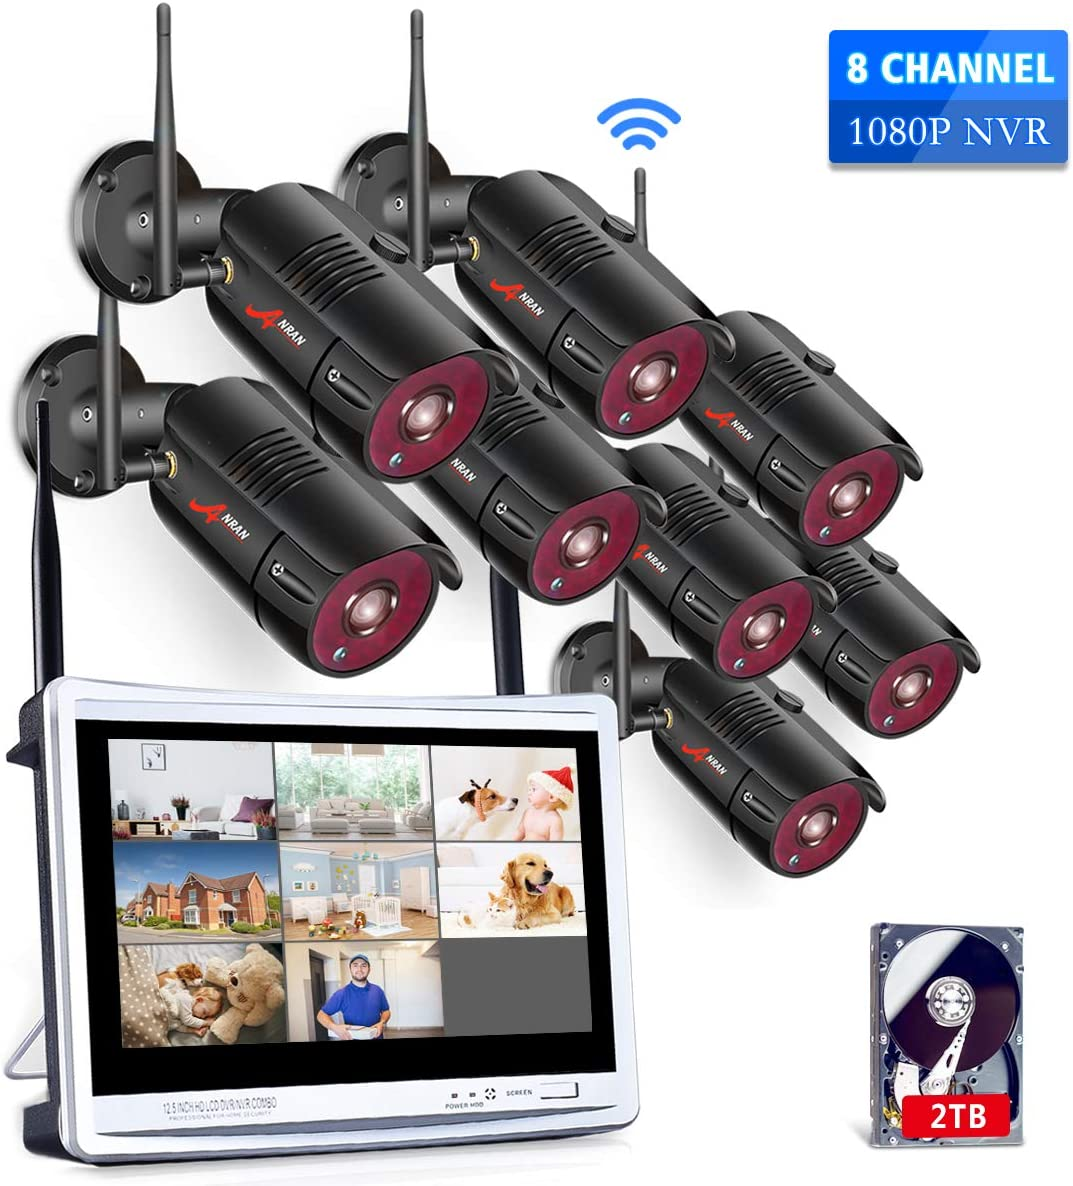 All-in-One 8 Channel Wireless Home Security Camera System with 12 Inch Monitor NVR Kits,1080P WiFi IP Surveillance Video System 2TB HDD with 8Pcs 2.0MP Cameras,75ft Night Vision,Motion Detection ANRAN